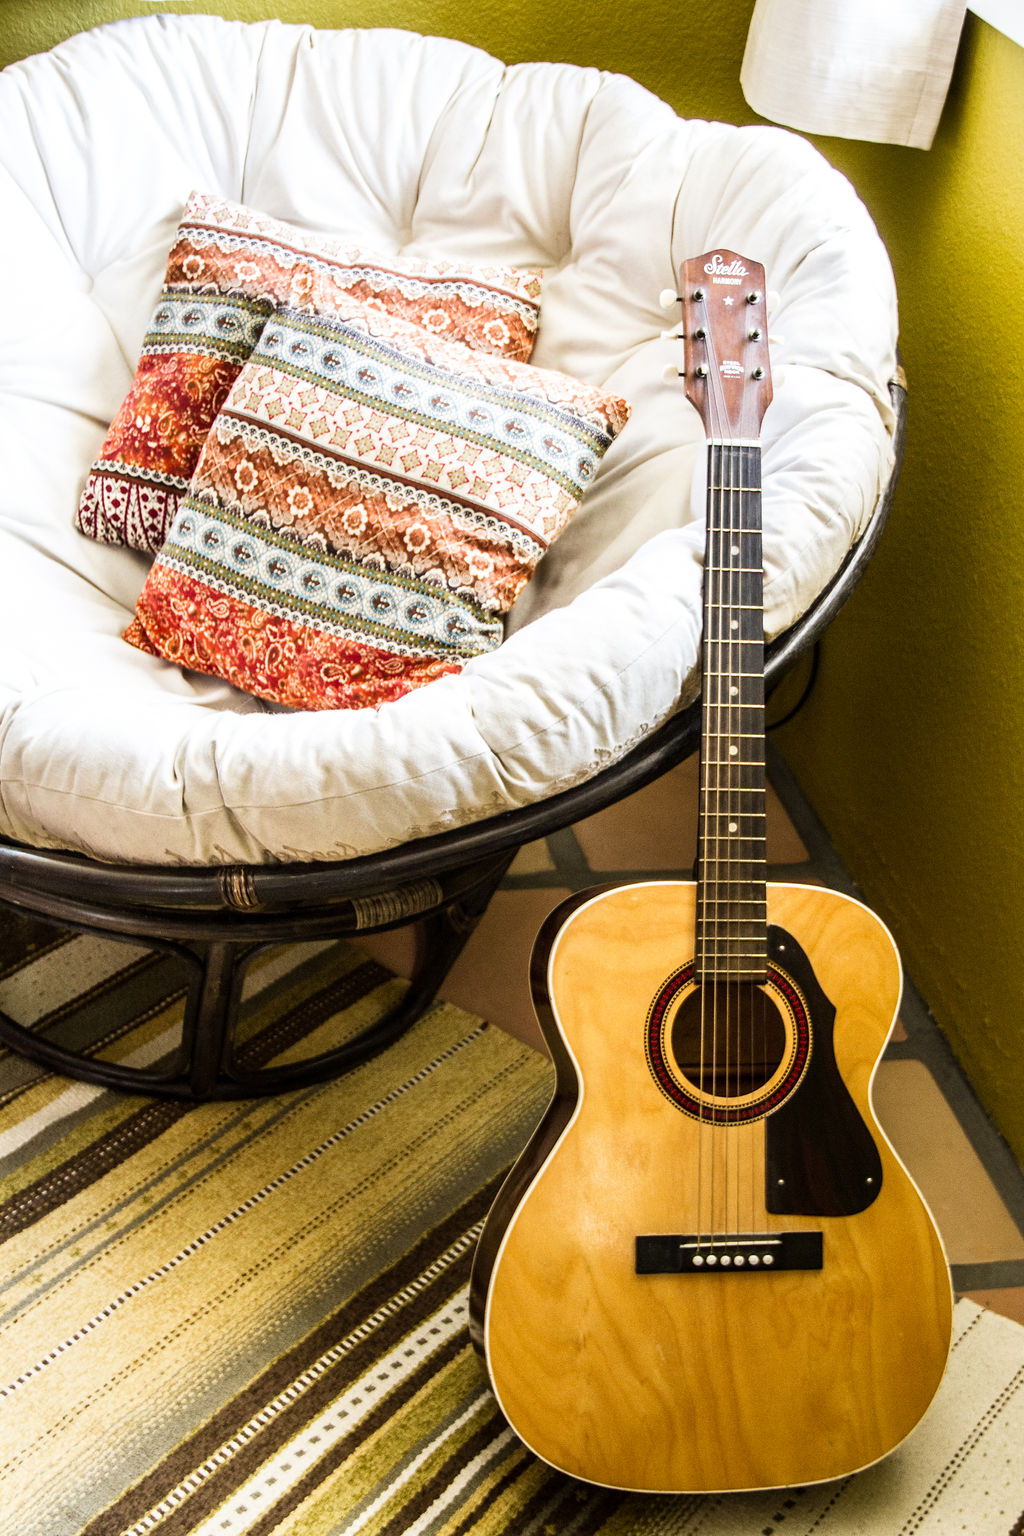 Guitar_Hangout_Bedroom.jpg